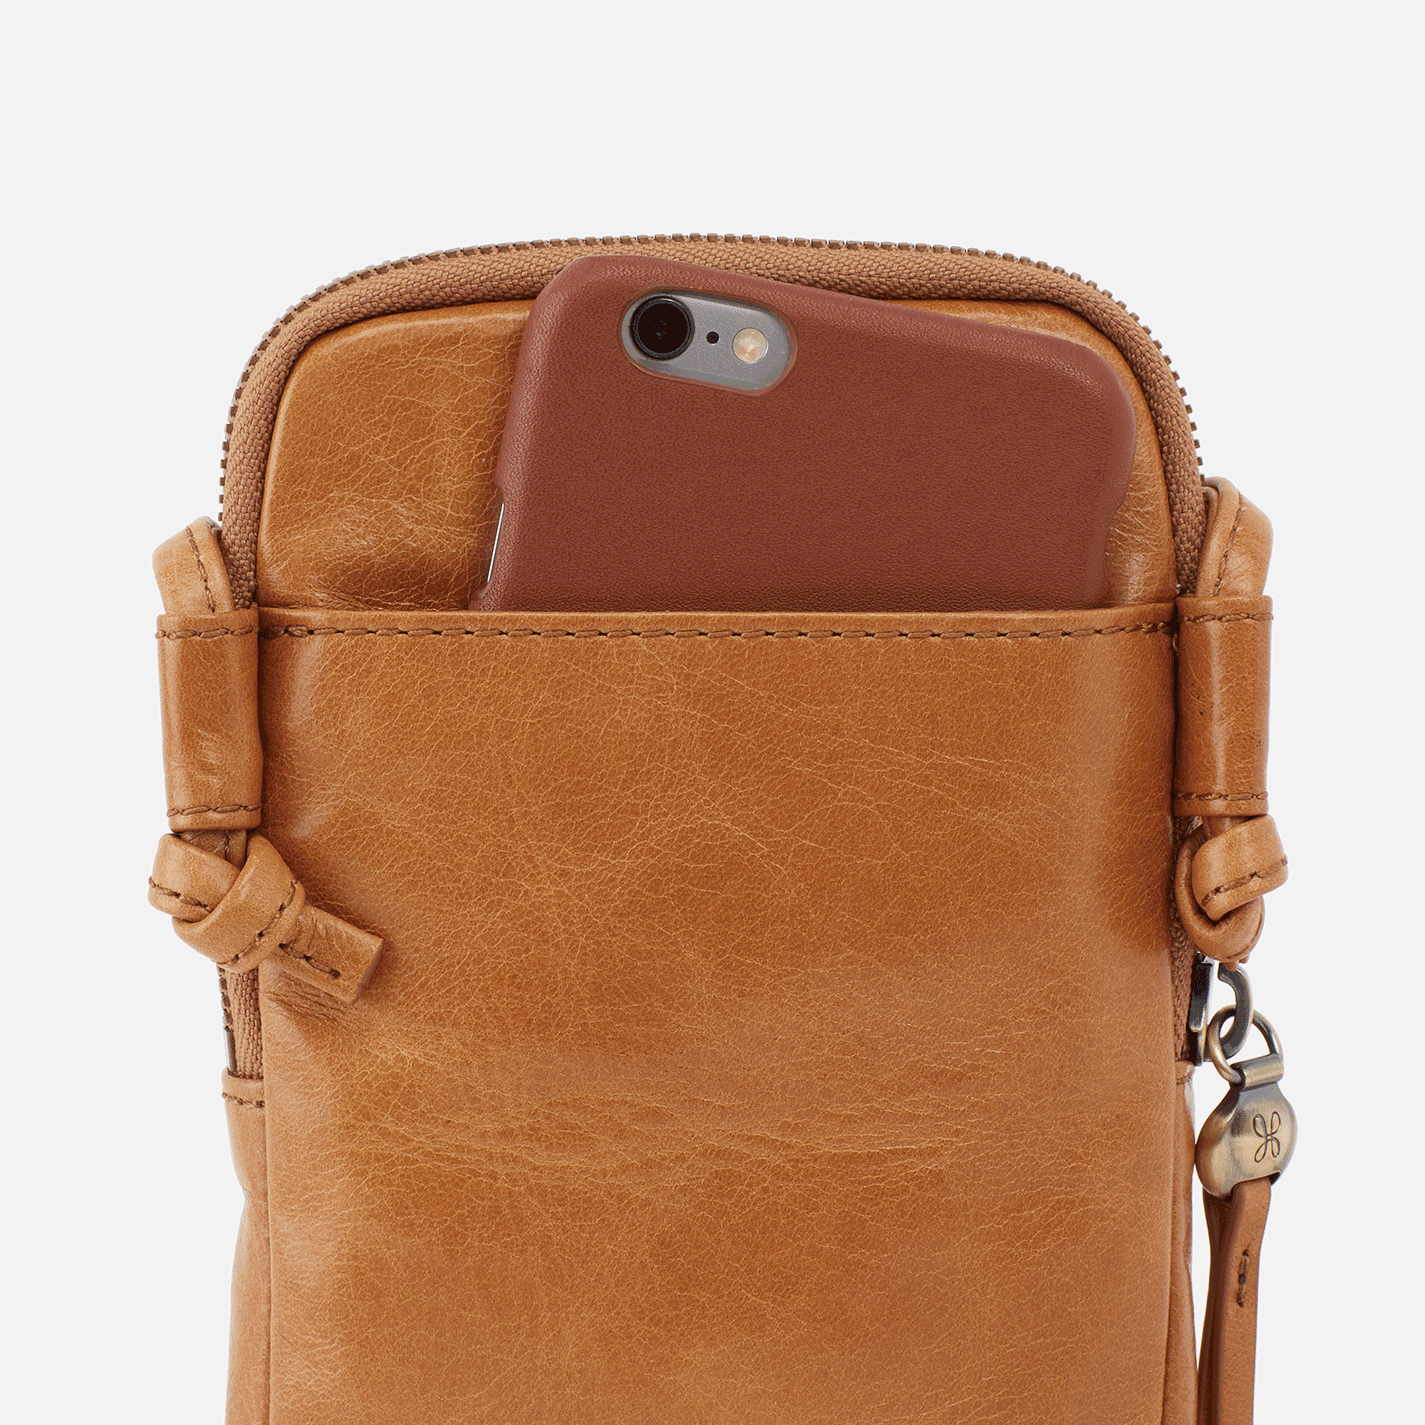 HOBO - FATE CROSSBODY IN HONEY